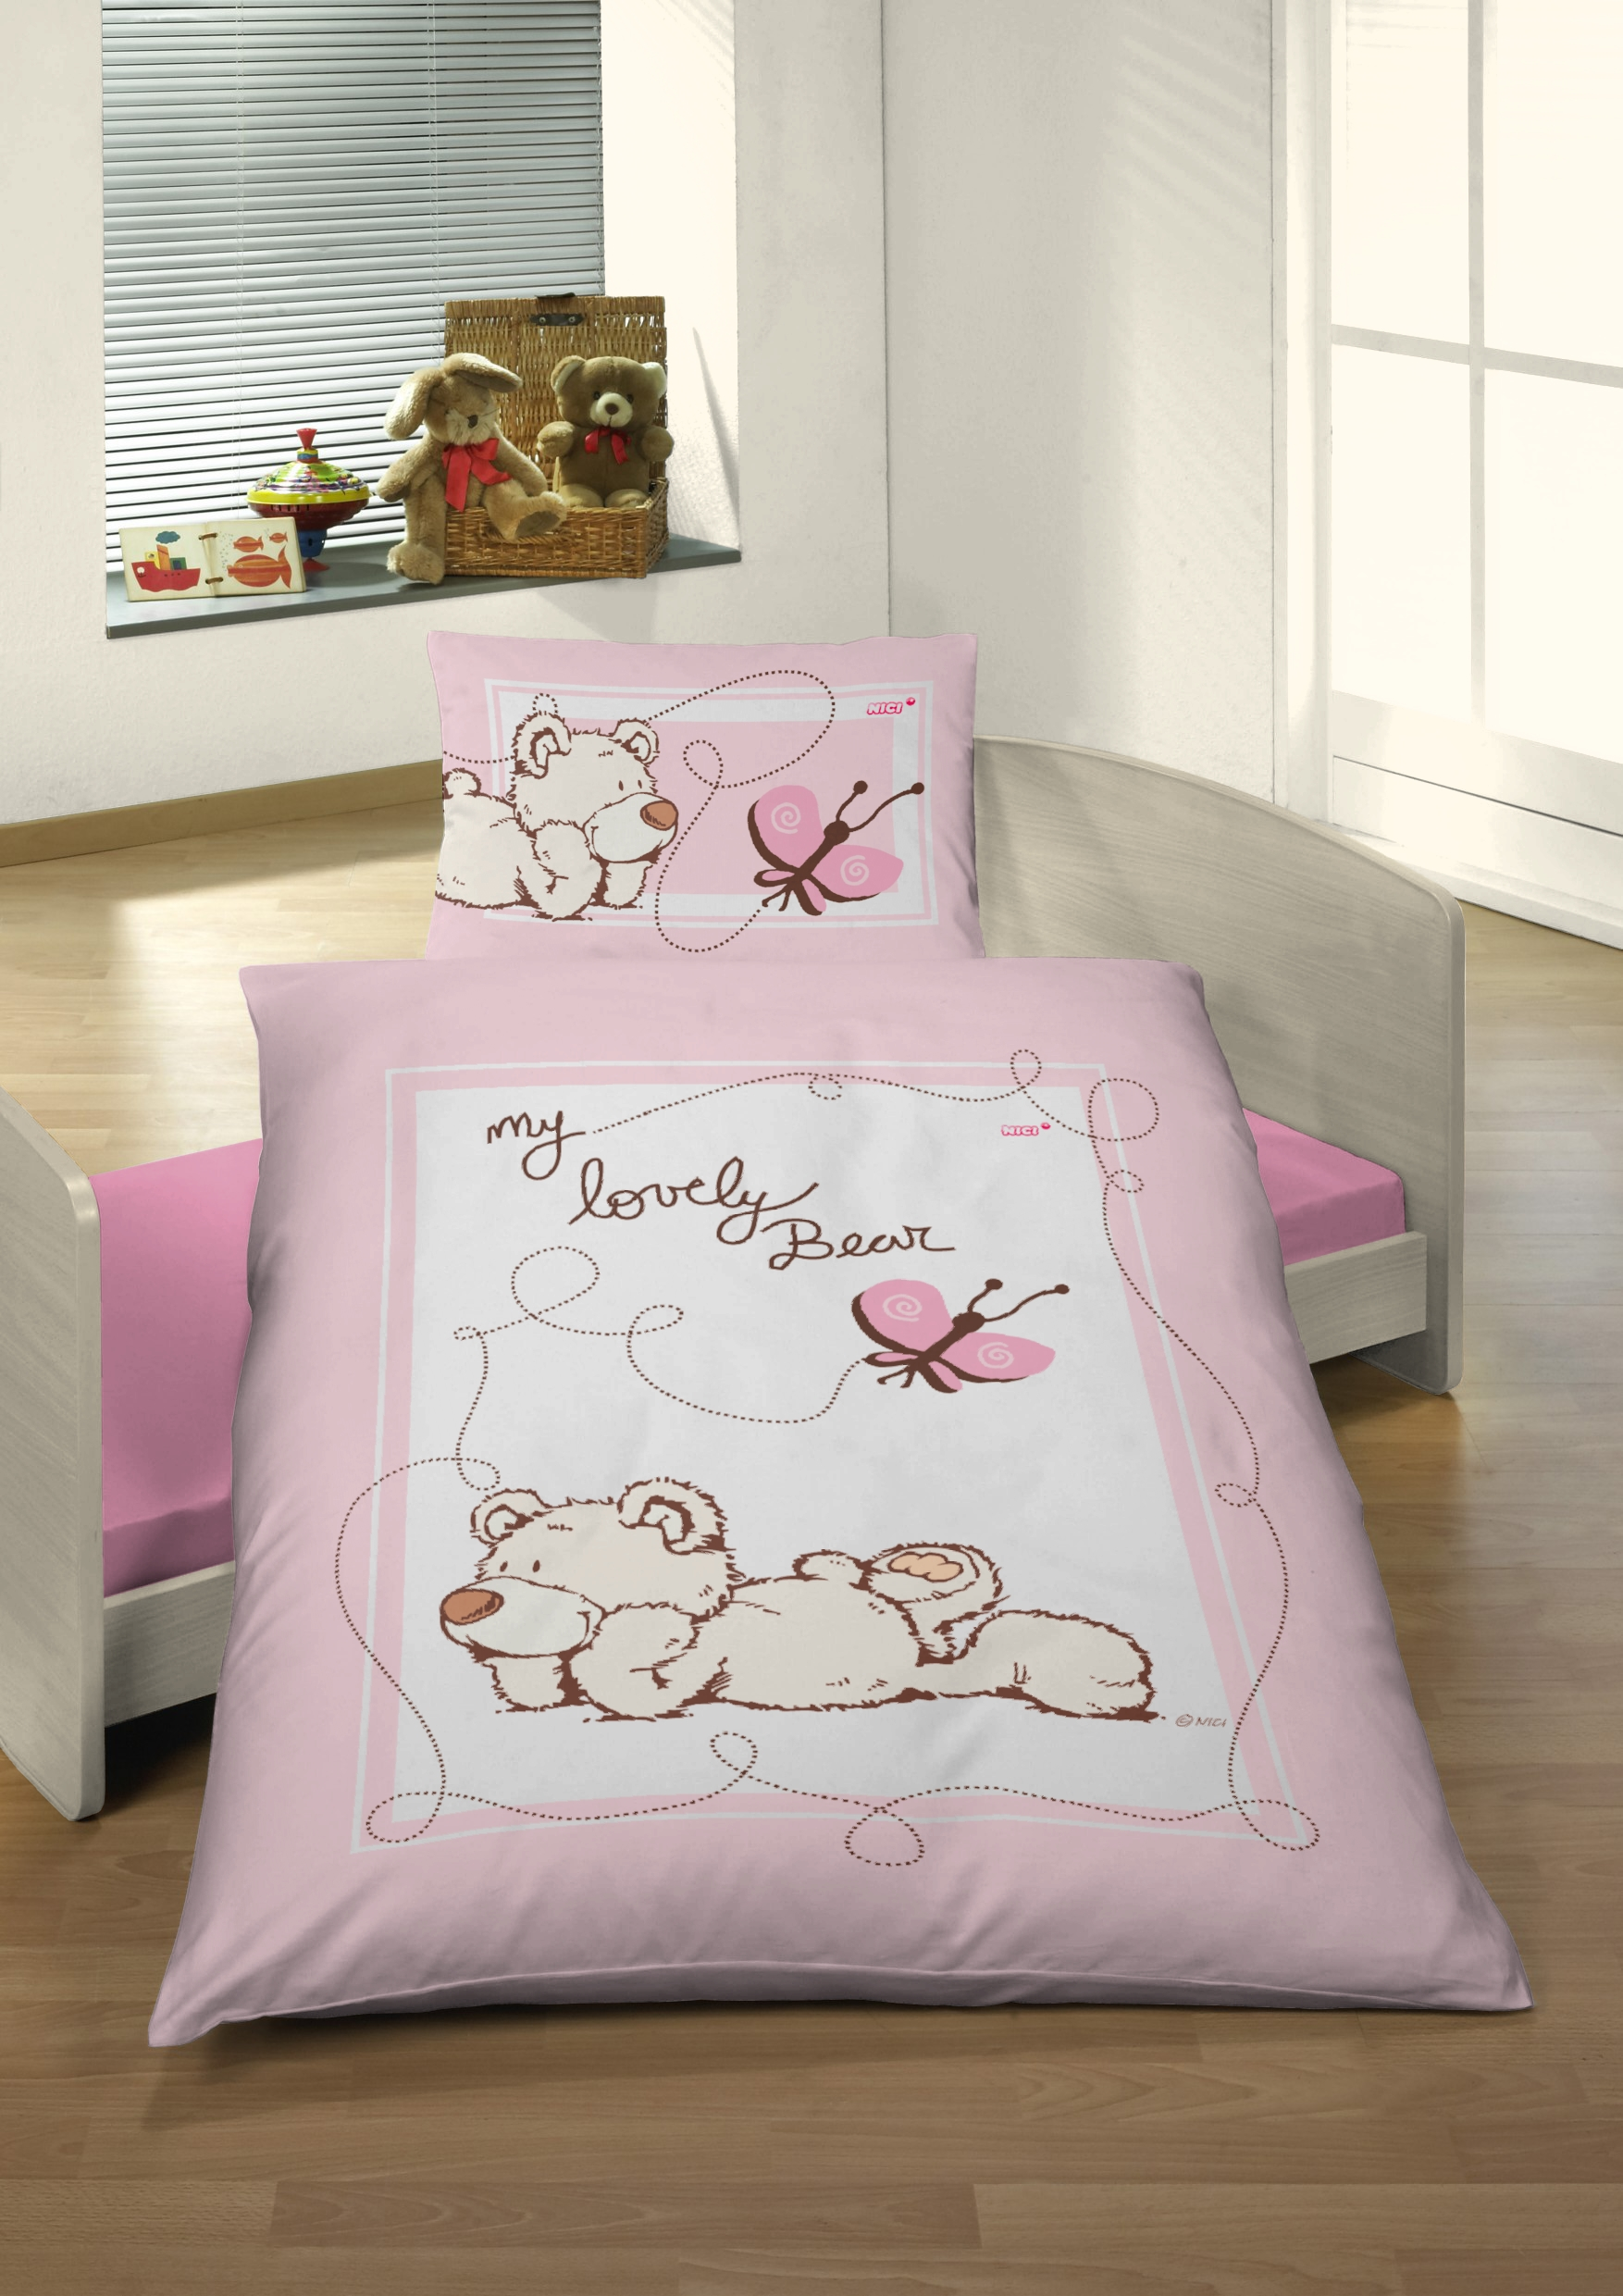 tr umsch n renforc baby bettw sche 100 135 cm nici my lovely bear rosa 100 135 baby kinder. Black Bedroom Furniture Sets. Home Design Ideas